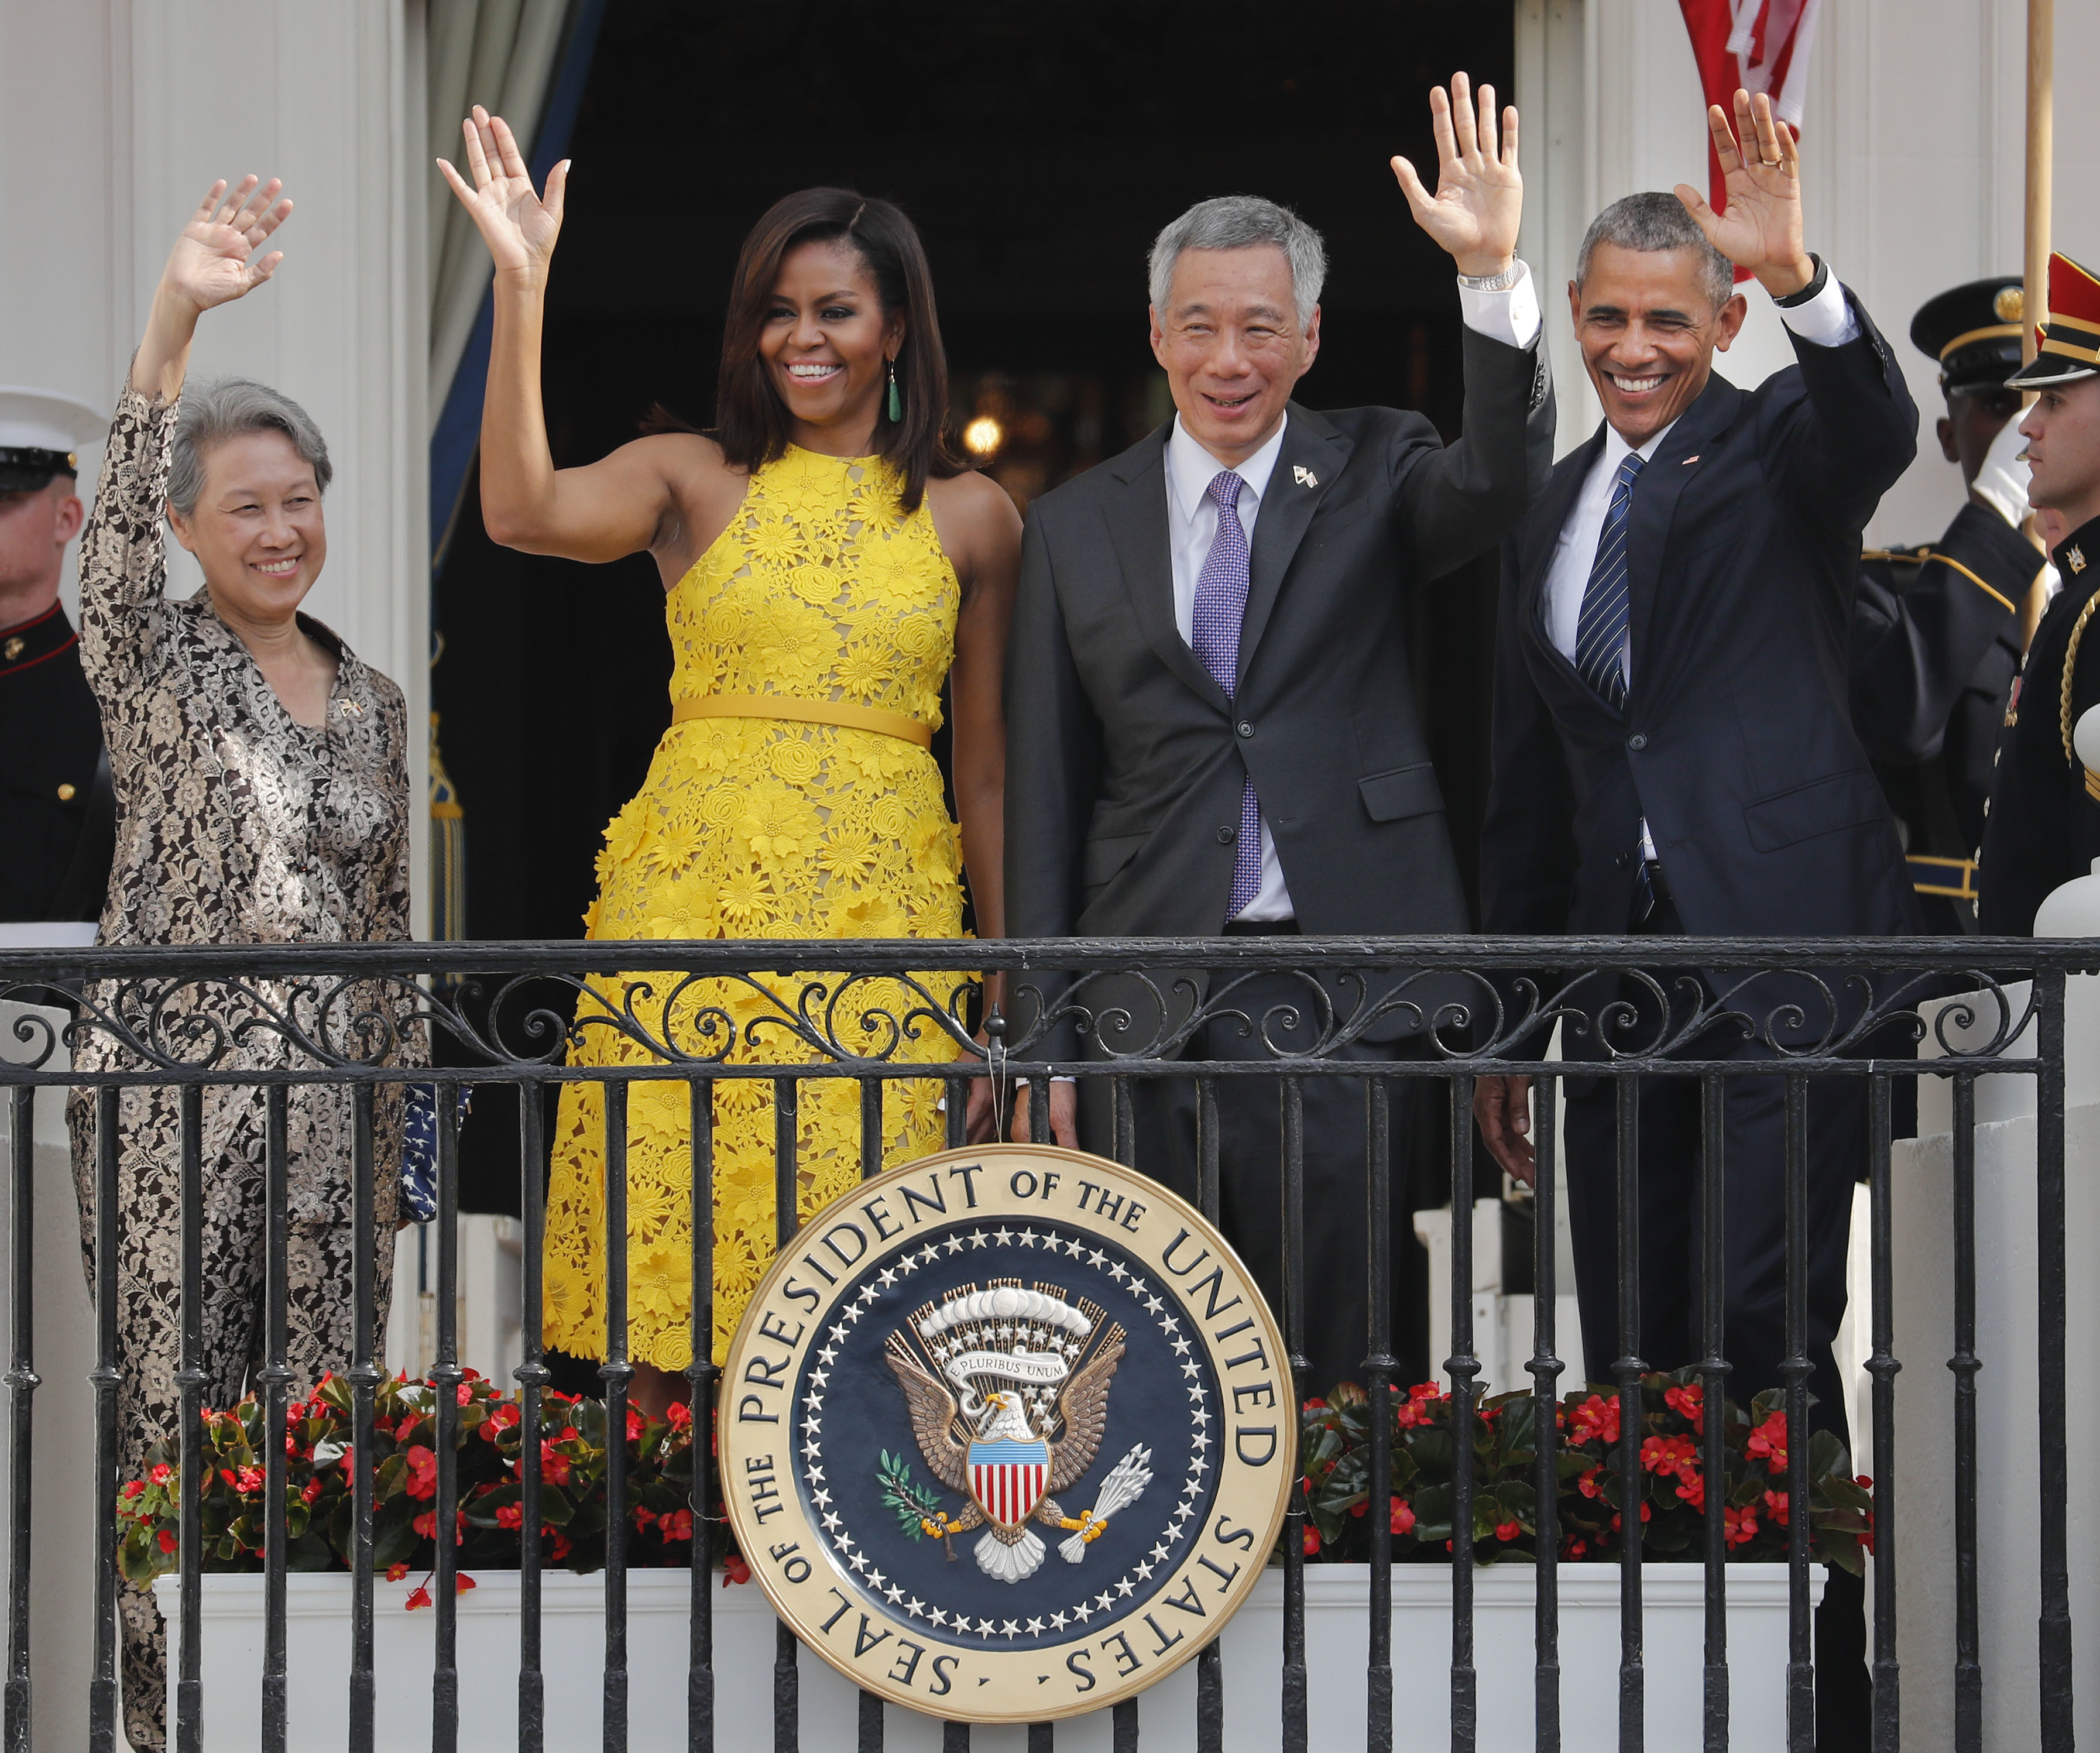 President Obama, First Lady Michelle Obama, Singapore's Prime Minister Lee Hsien Loong and his wife Ho Ching wave from the Truman Balcony of the White House.